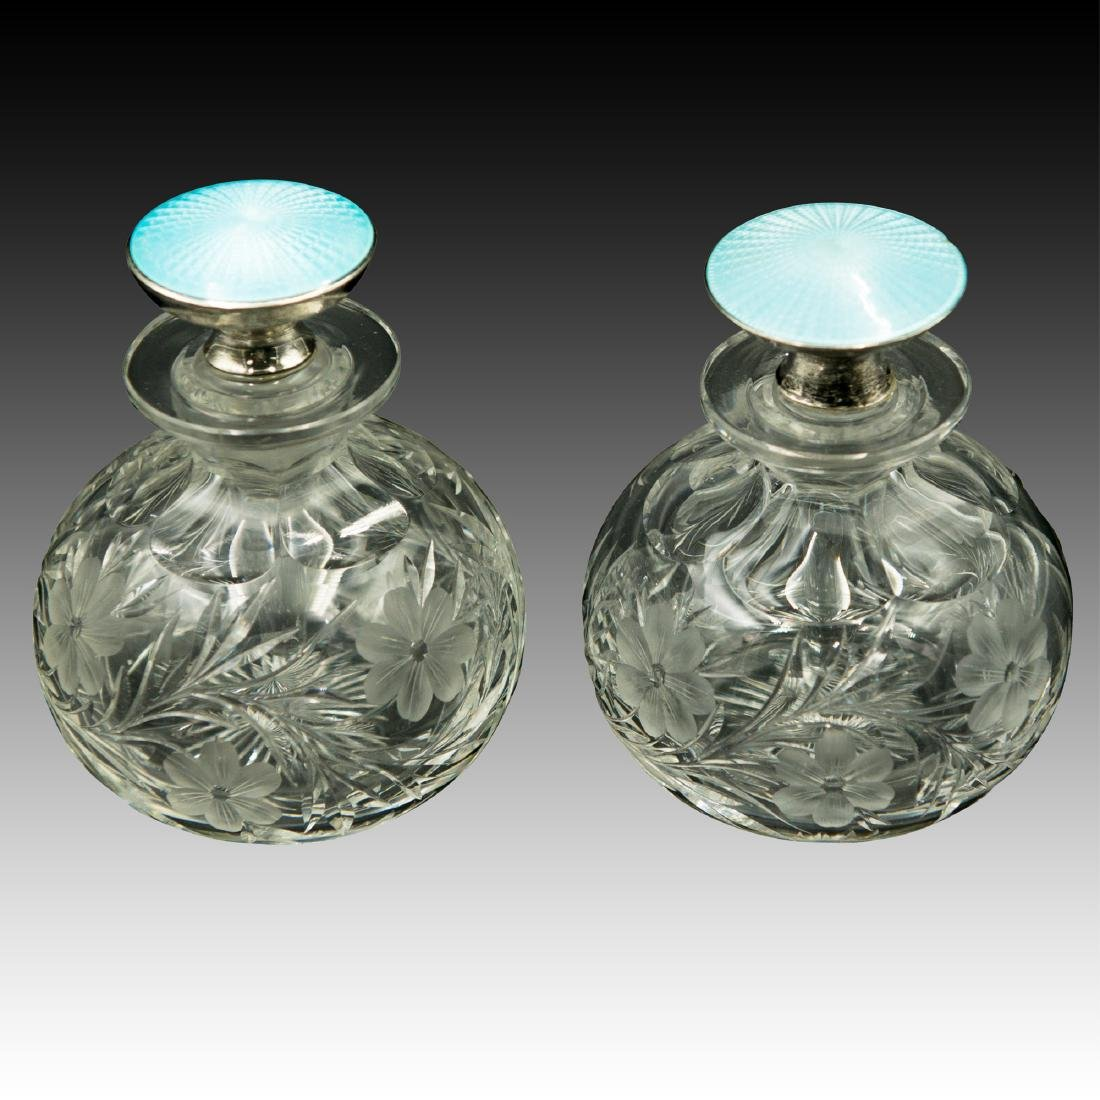 PAIR OF CRYSTAL STERLING GUILLOCHE PERFUME BOTTLES